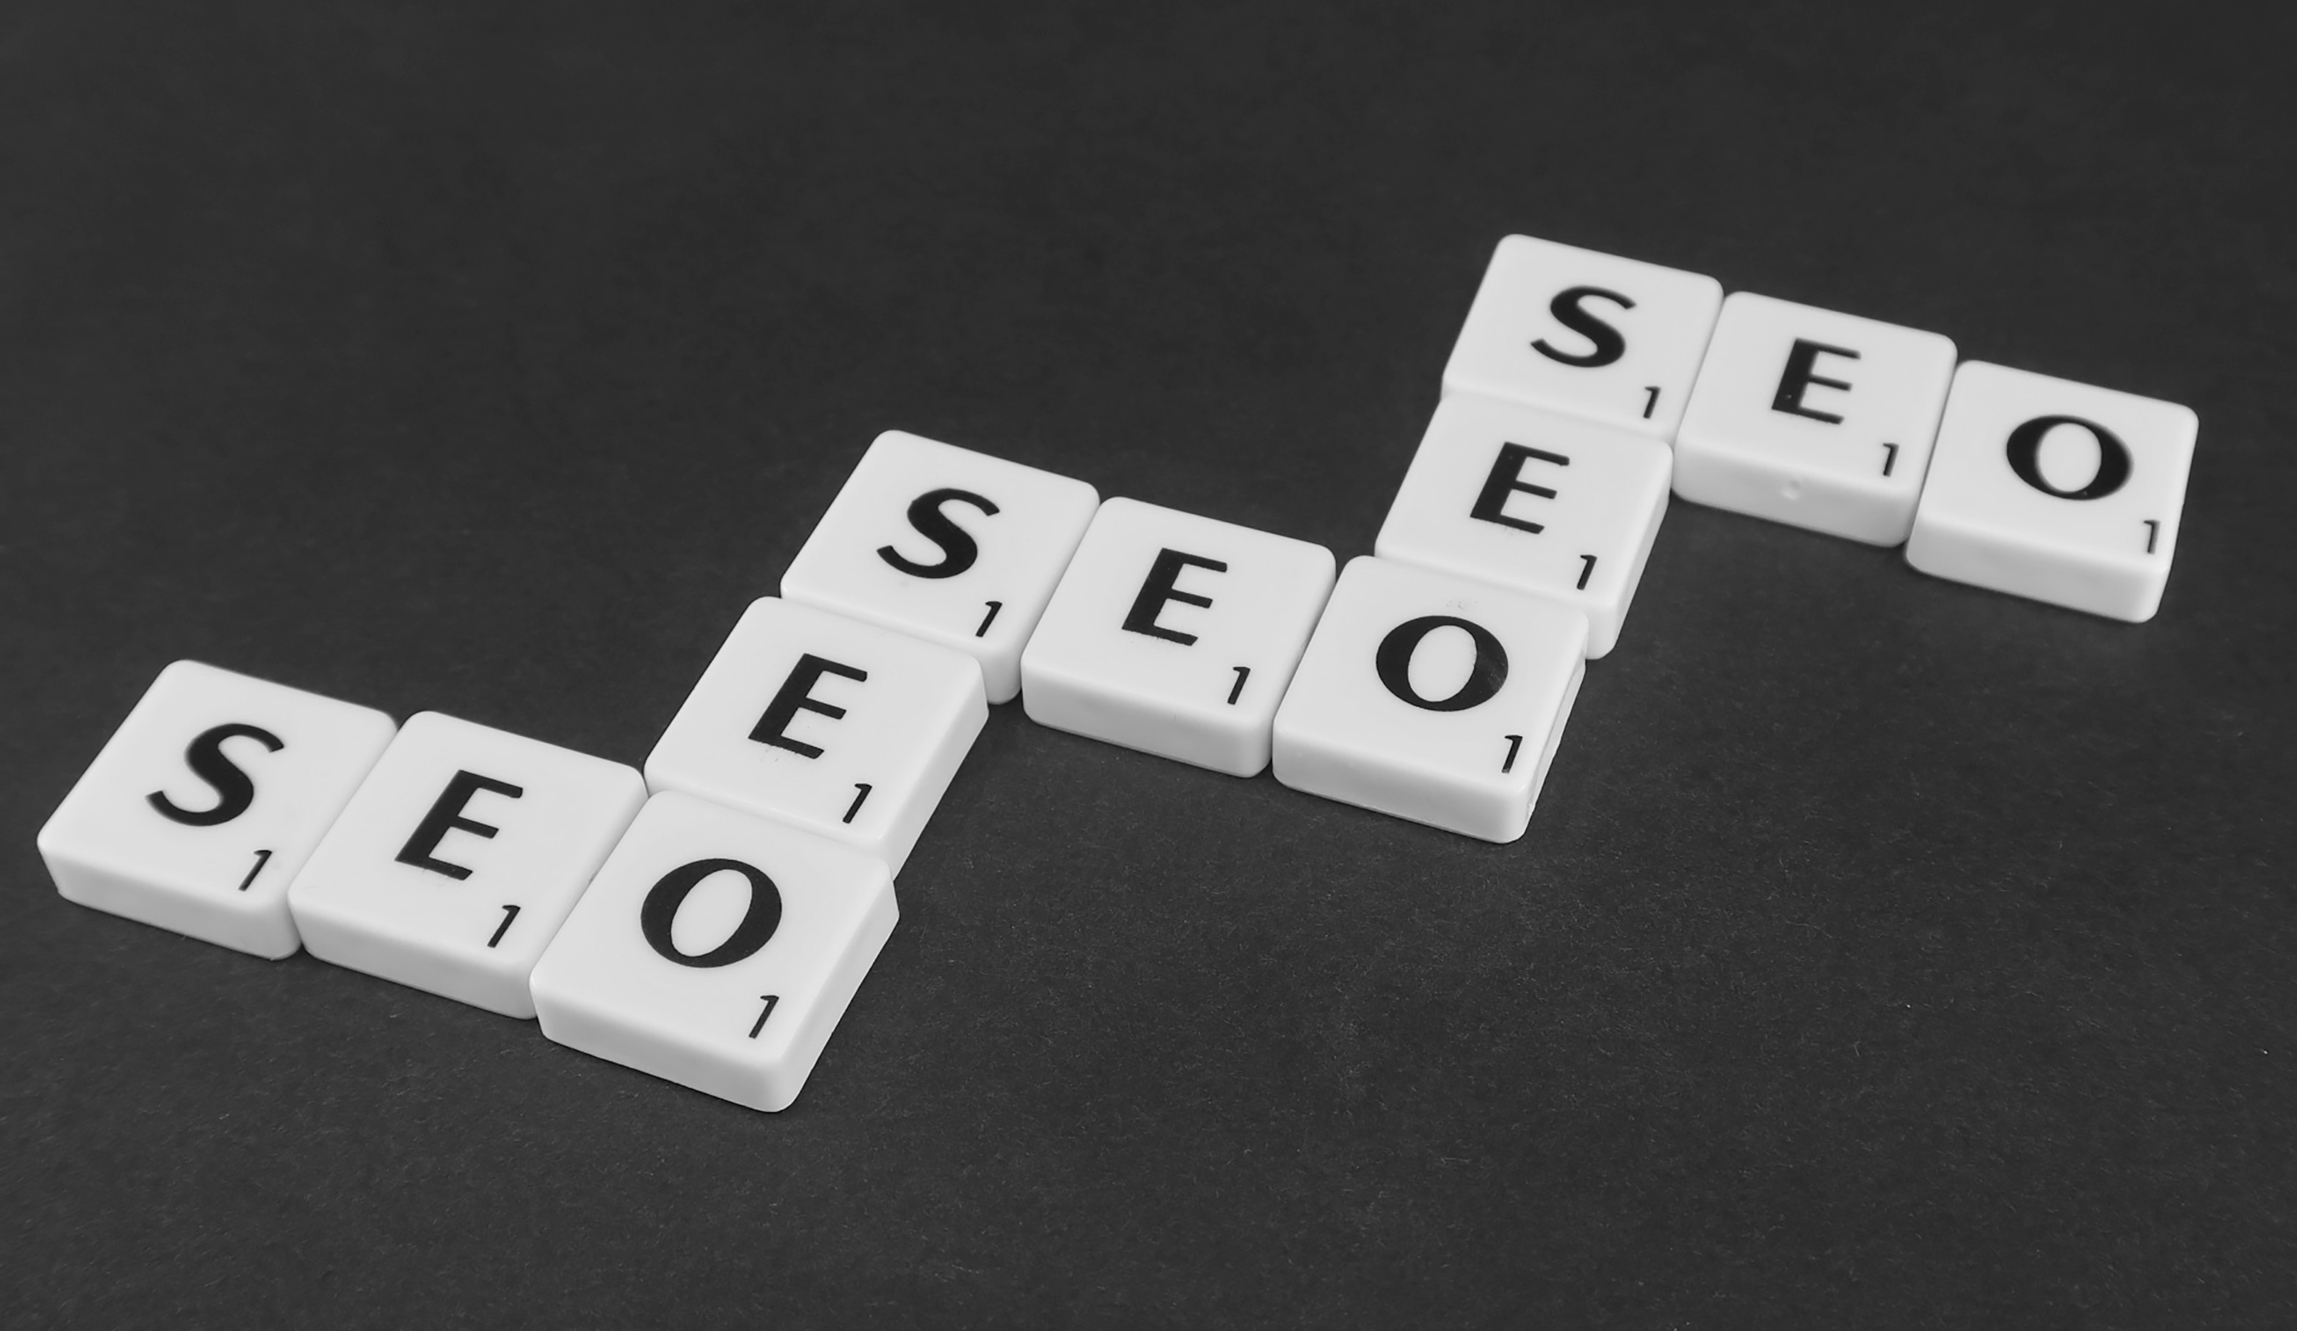 SEO written out on dominoes